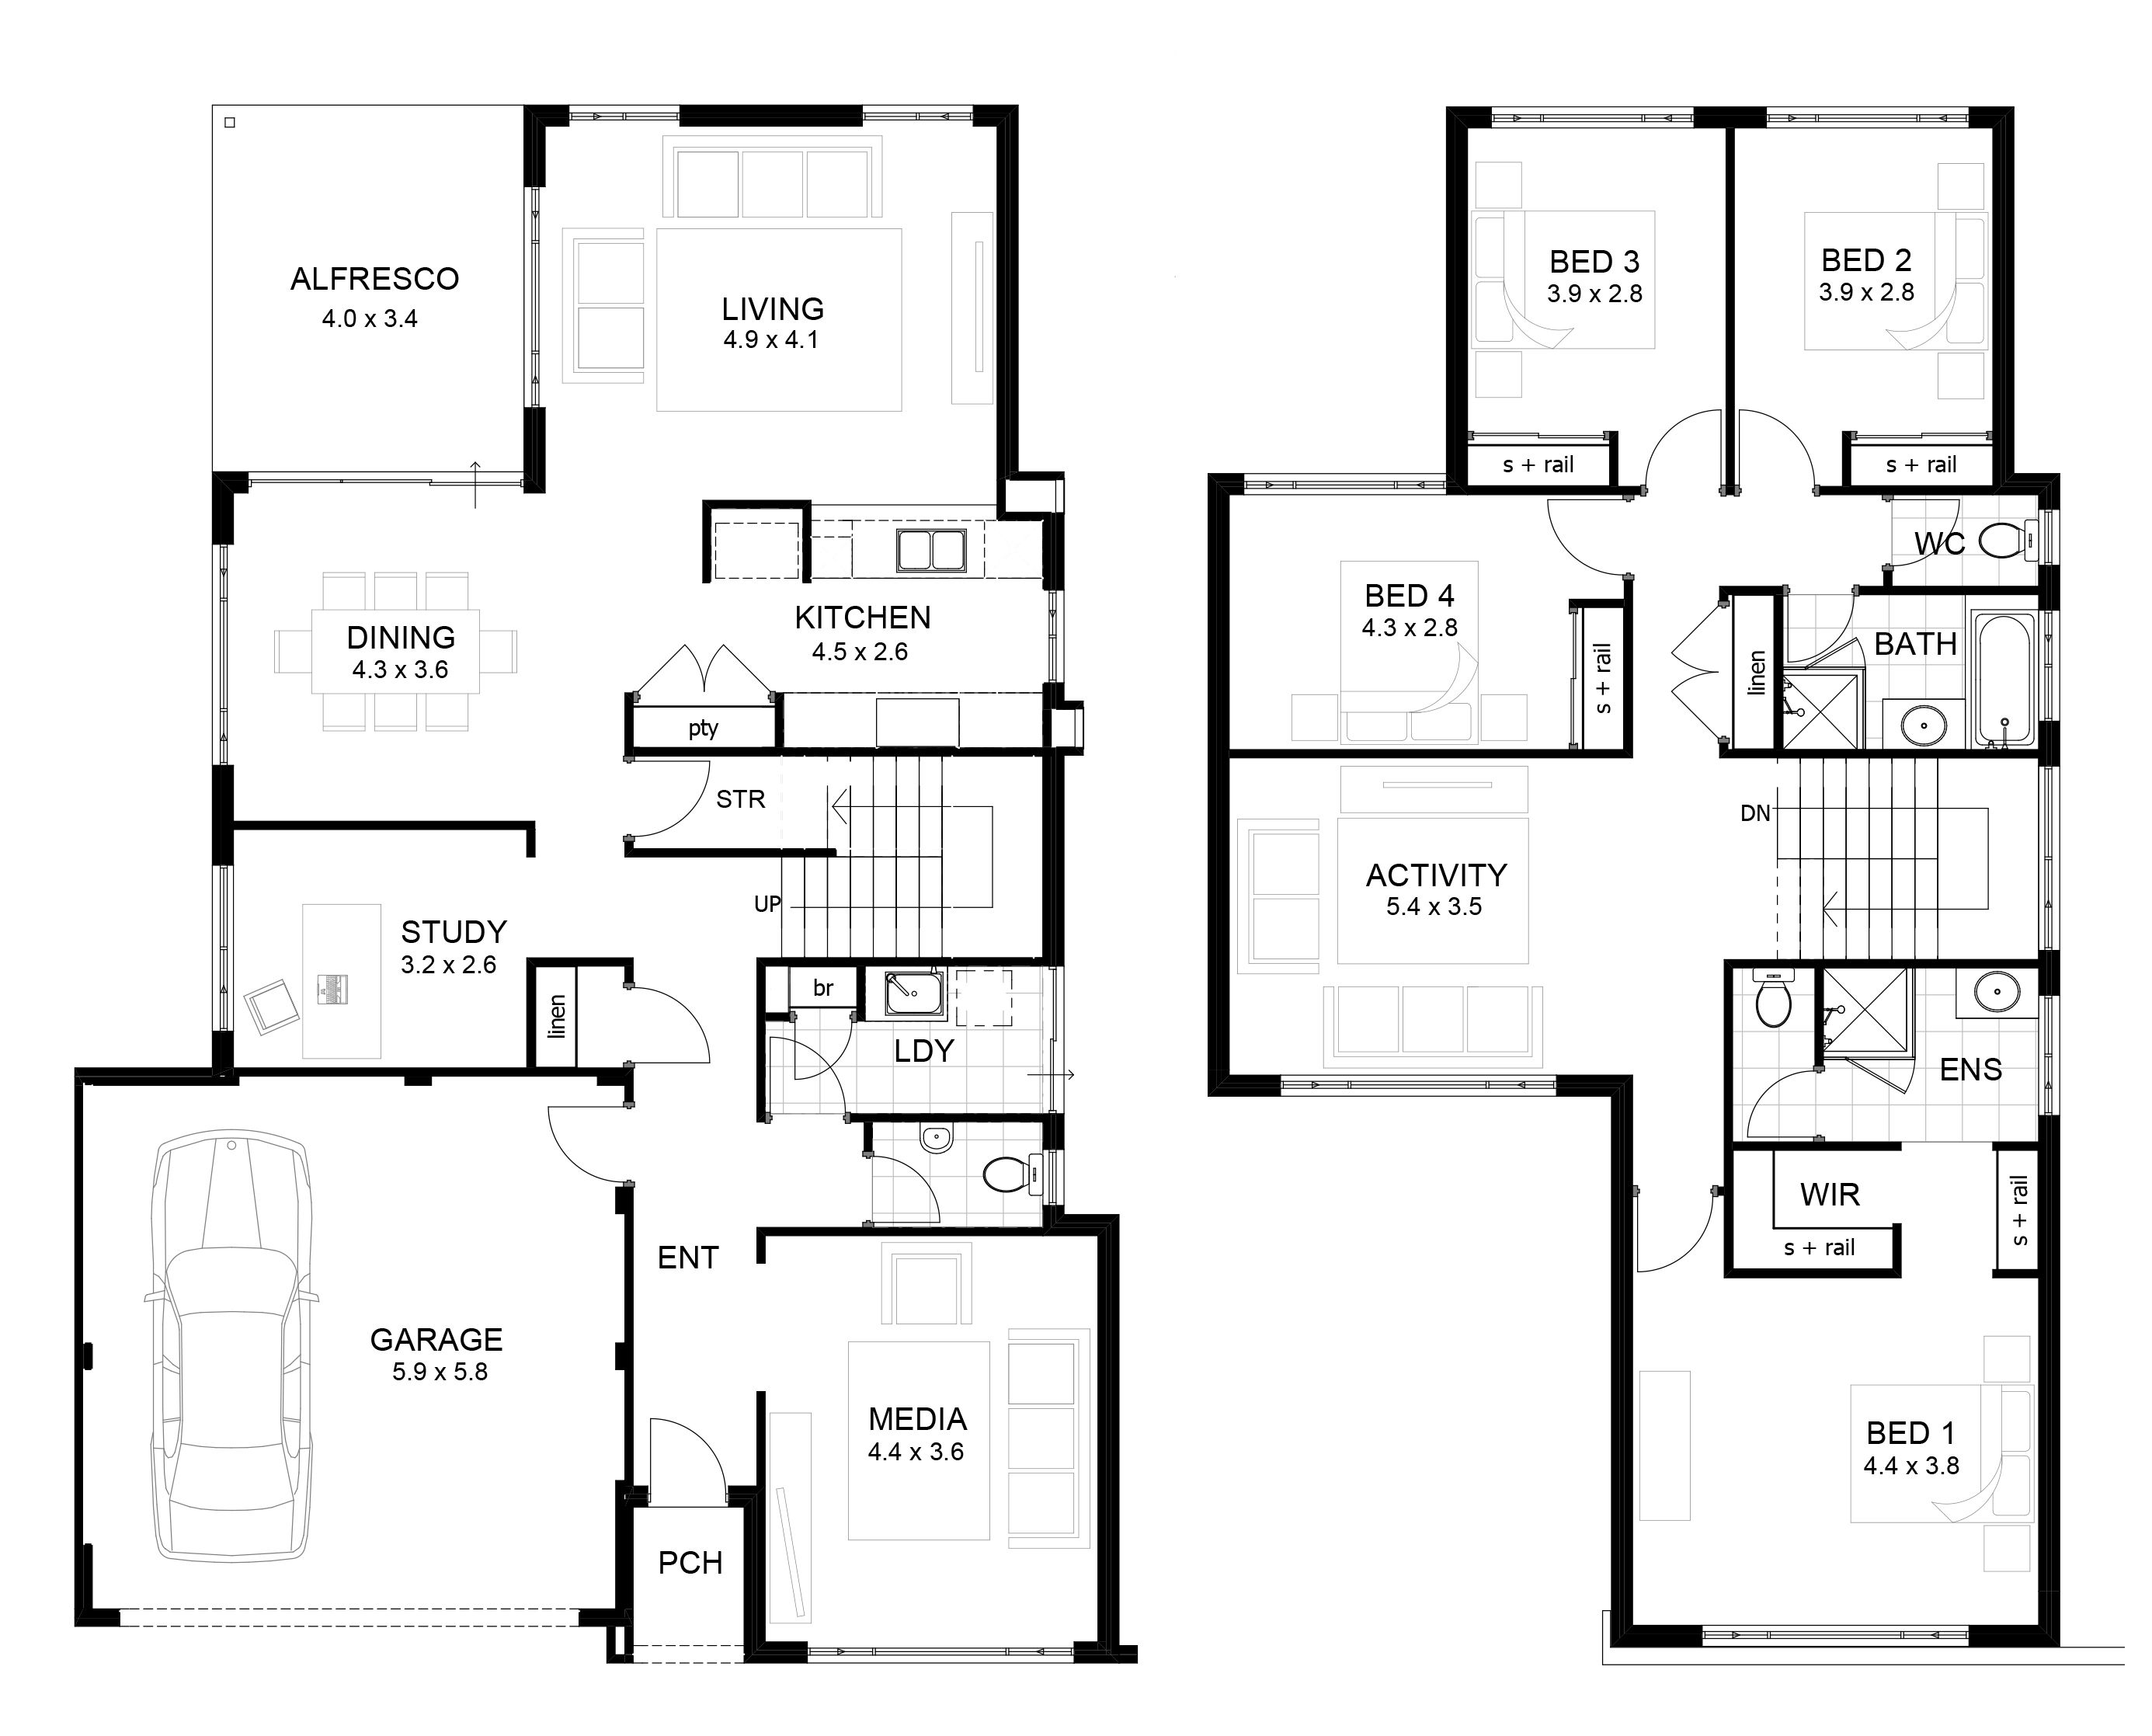 Residential House Floor Plan With Dimensions Home Deco Plans House